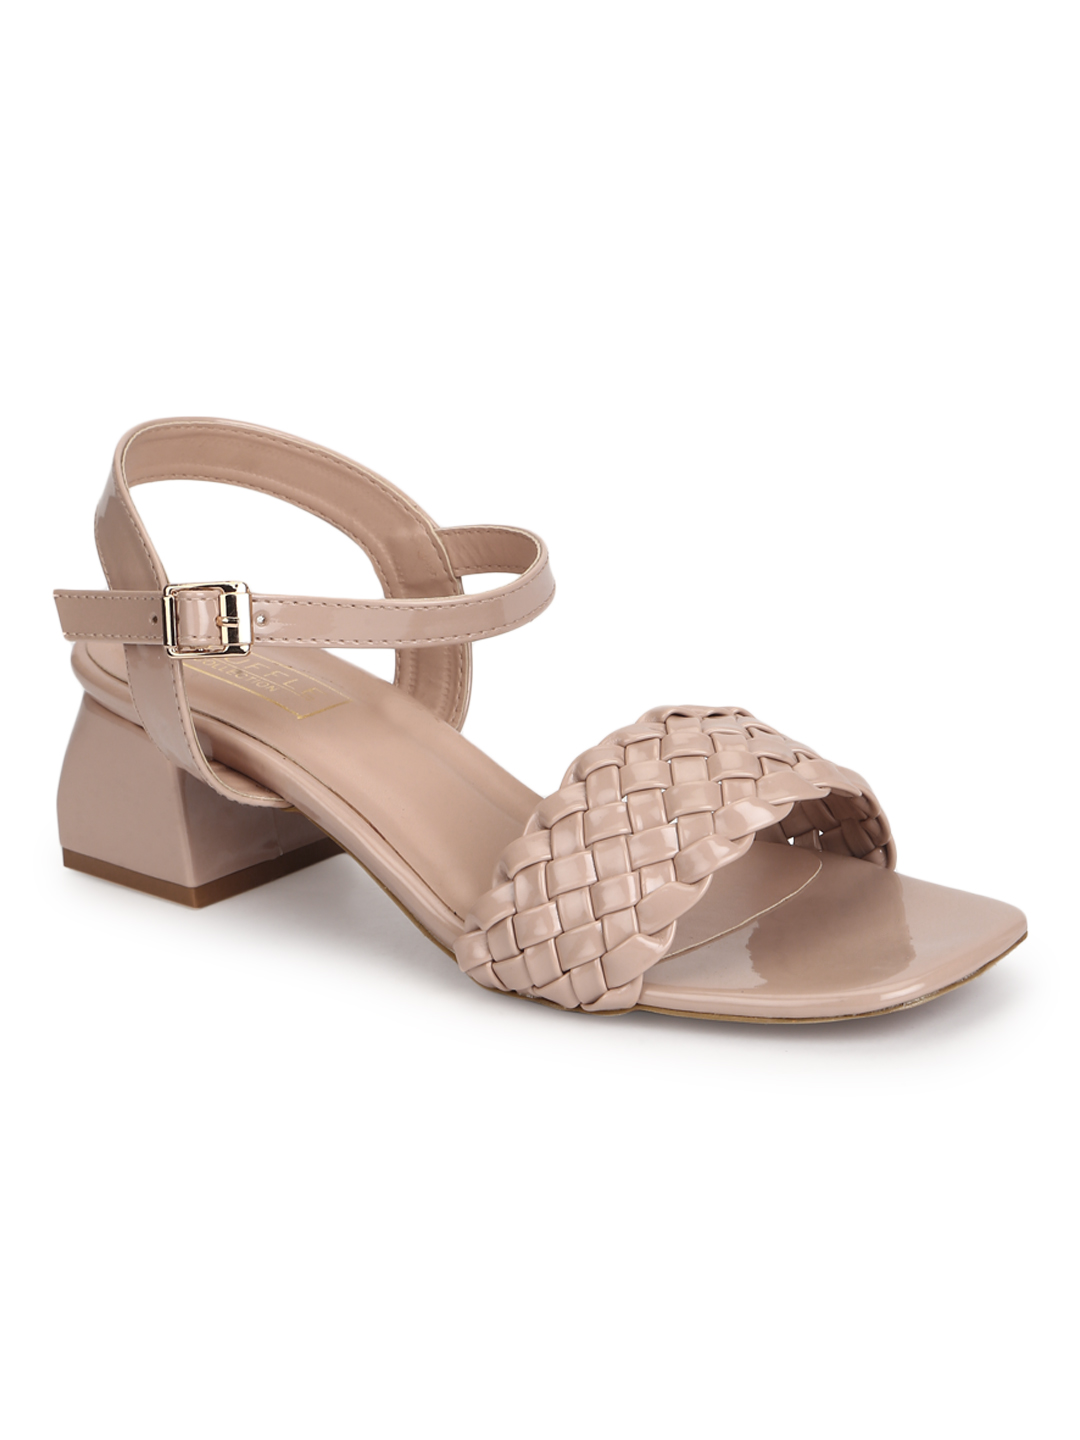 Truffle Collection   Truffle Collection Nude Patent Woven Low Block Heels